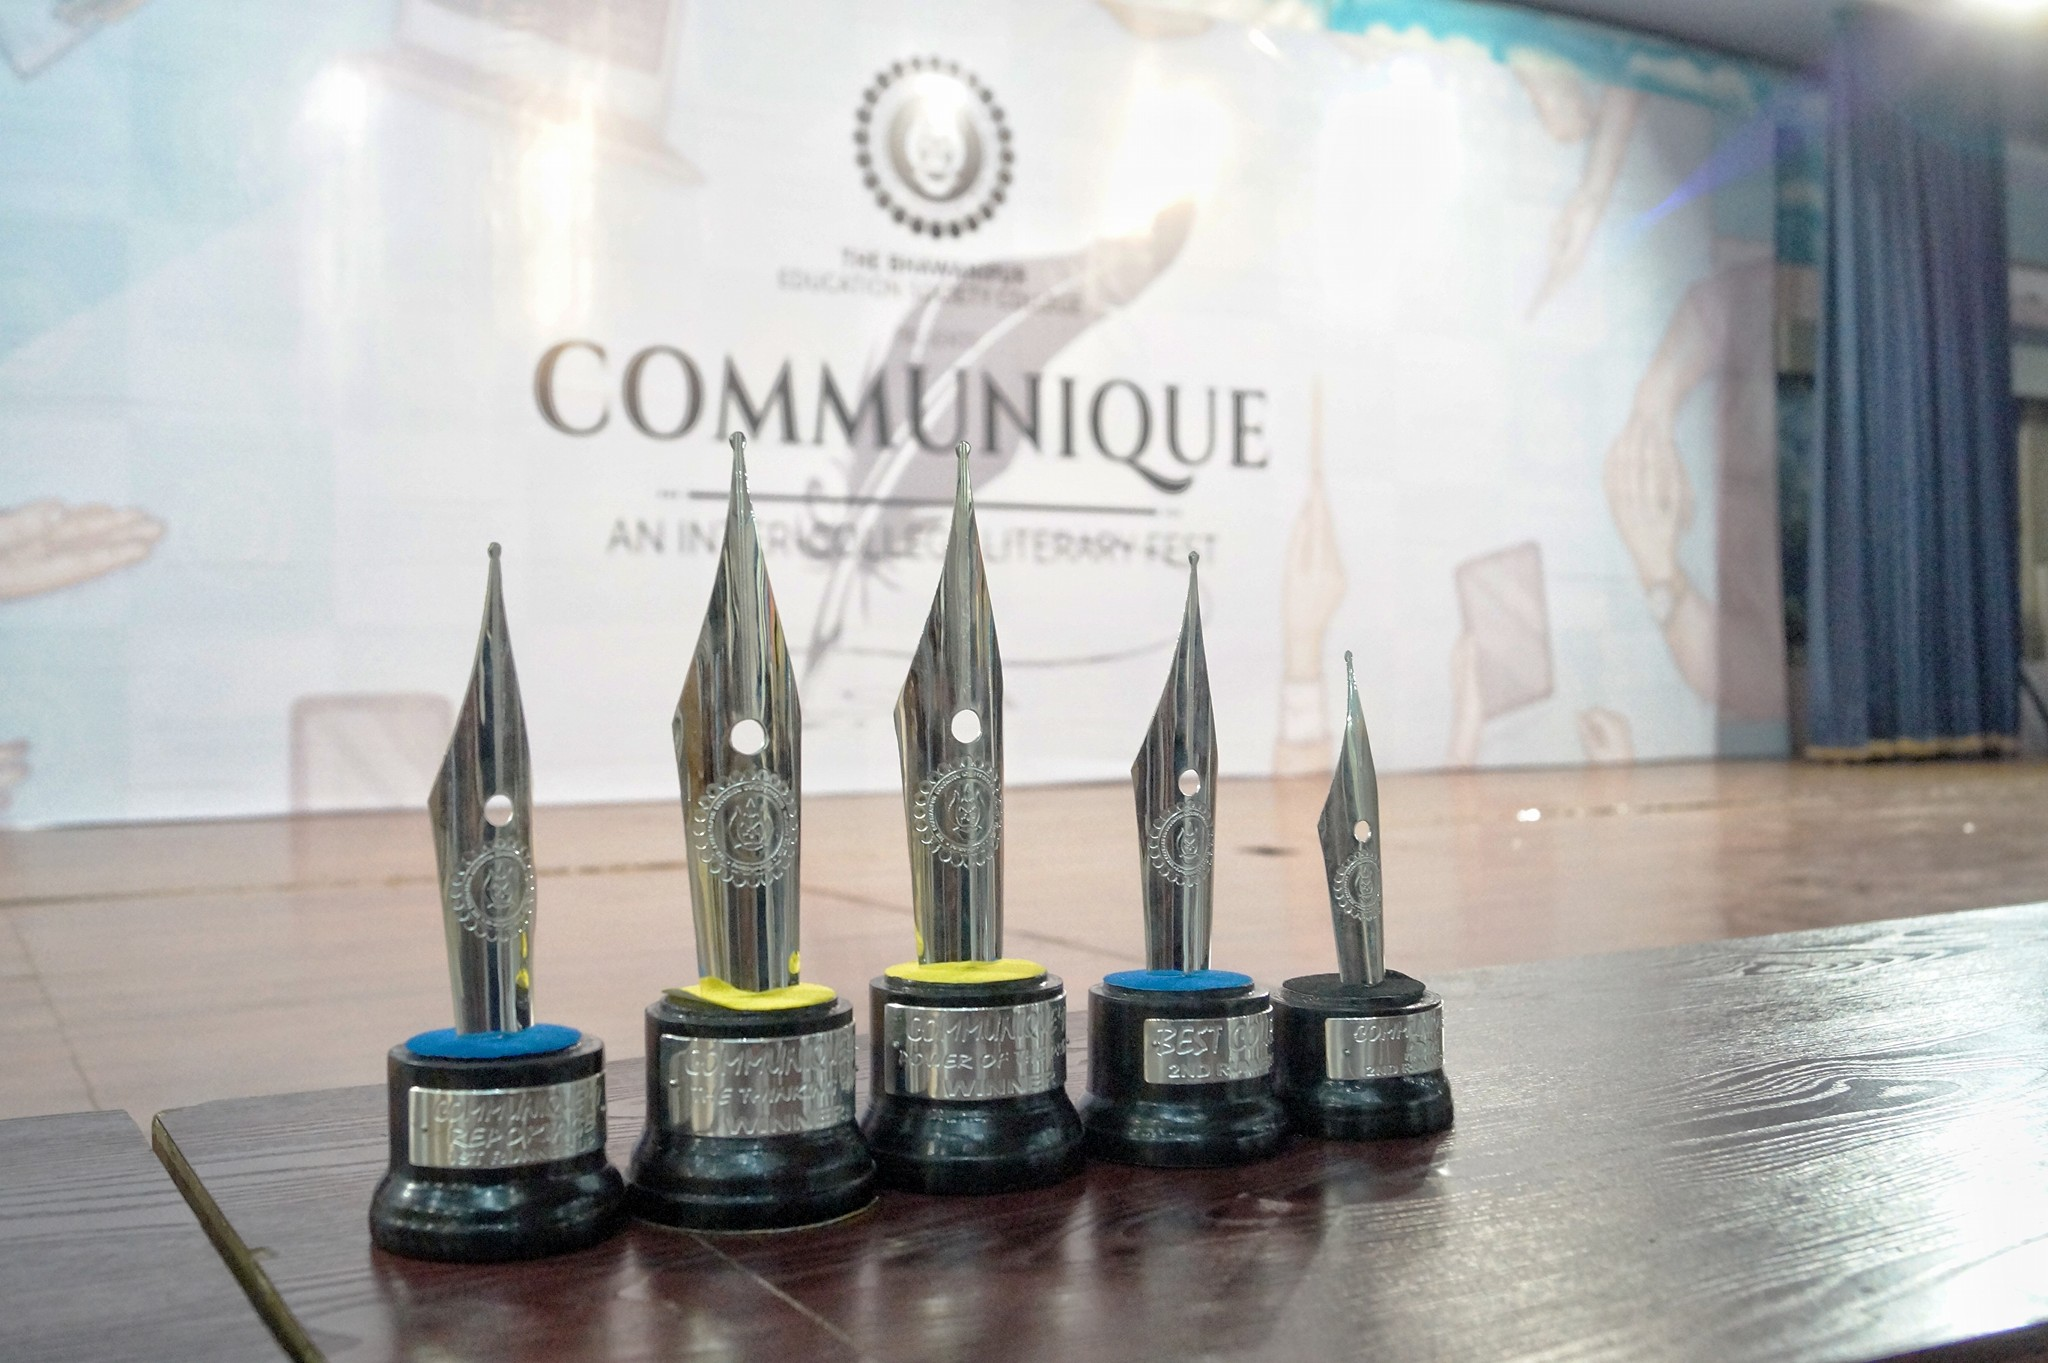 Prizes Won by iLEADERS in BESC Communique 2017